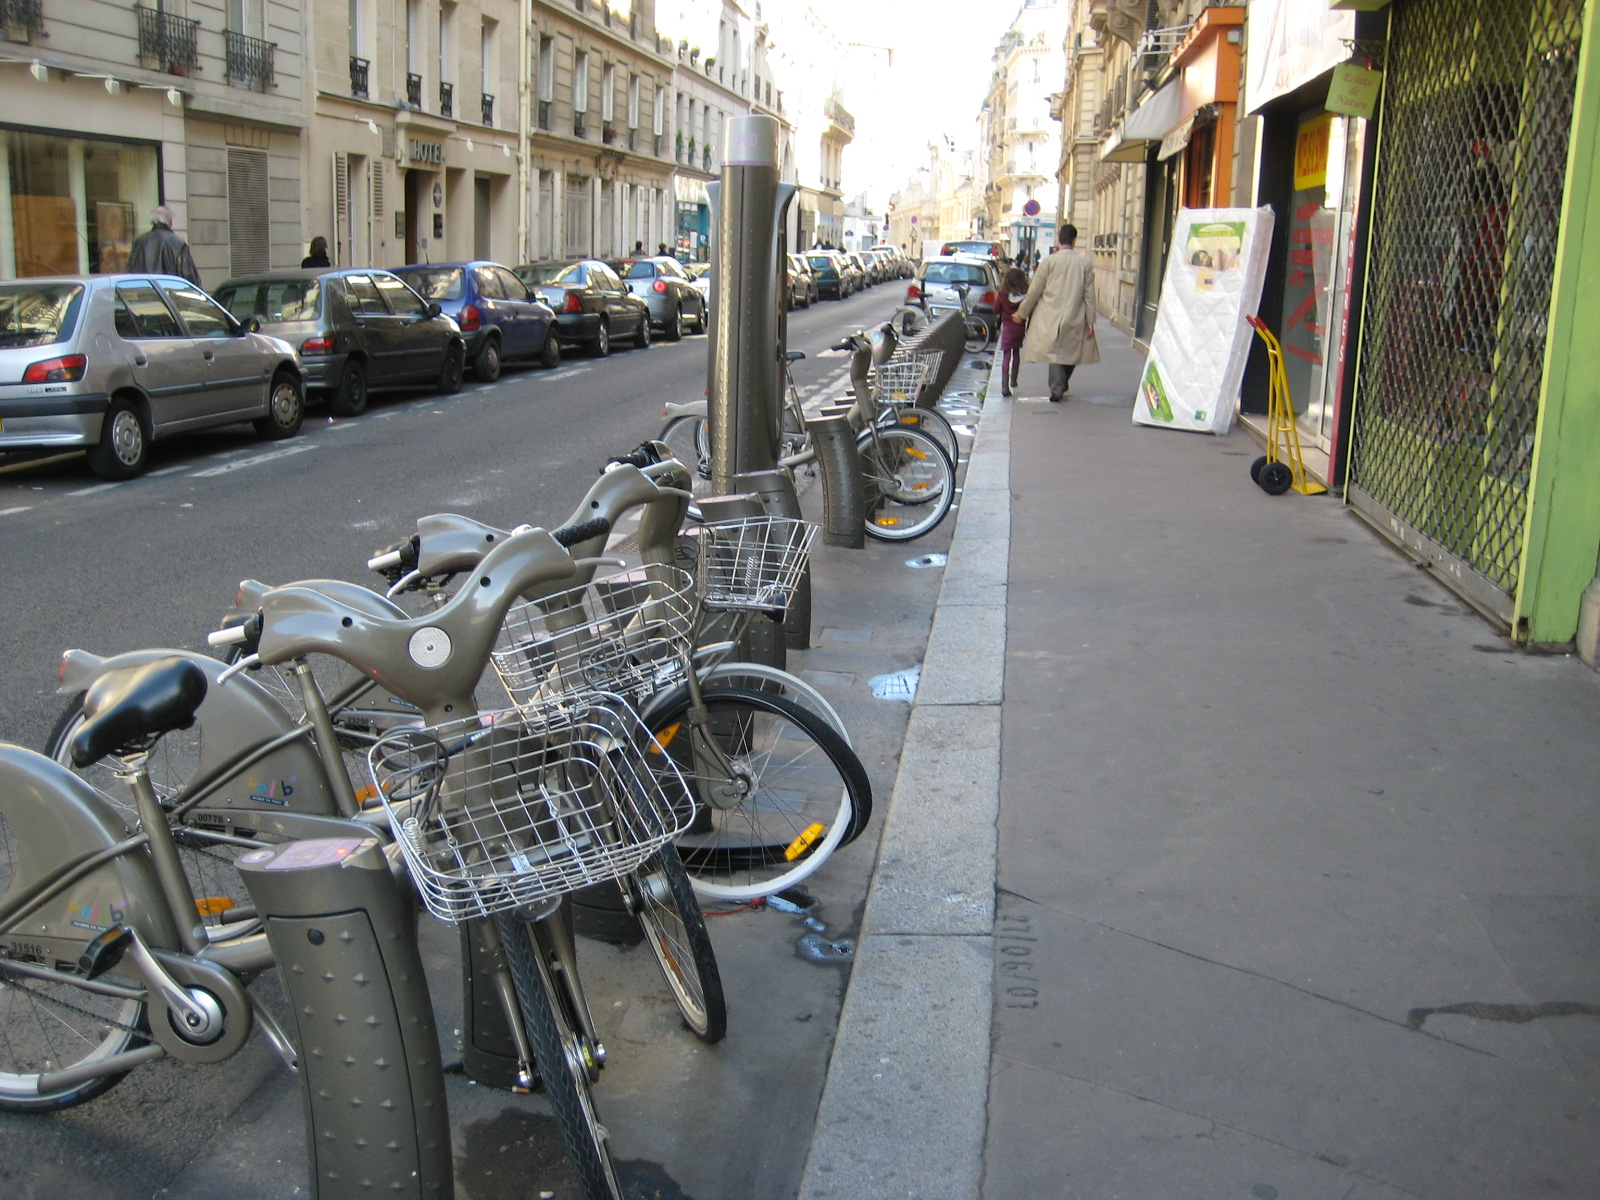 Velib outside my apartment